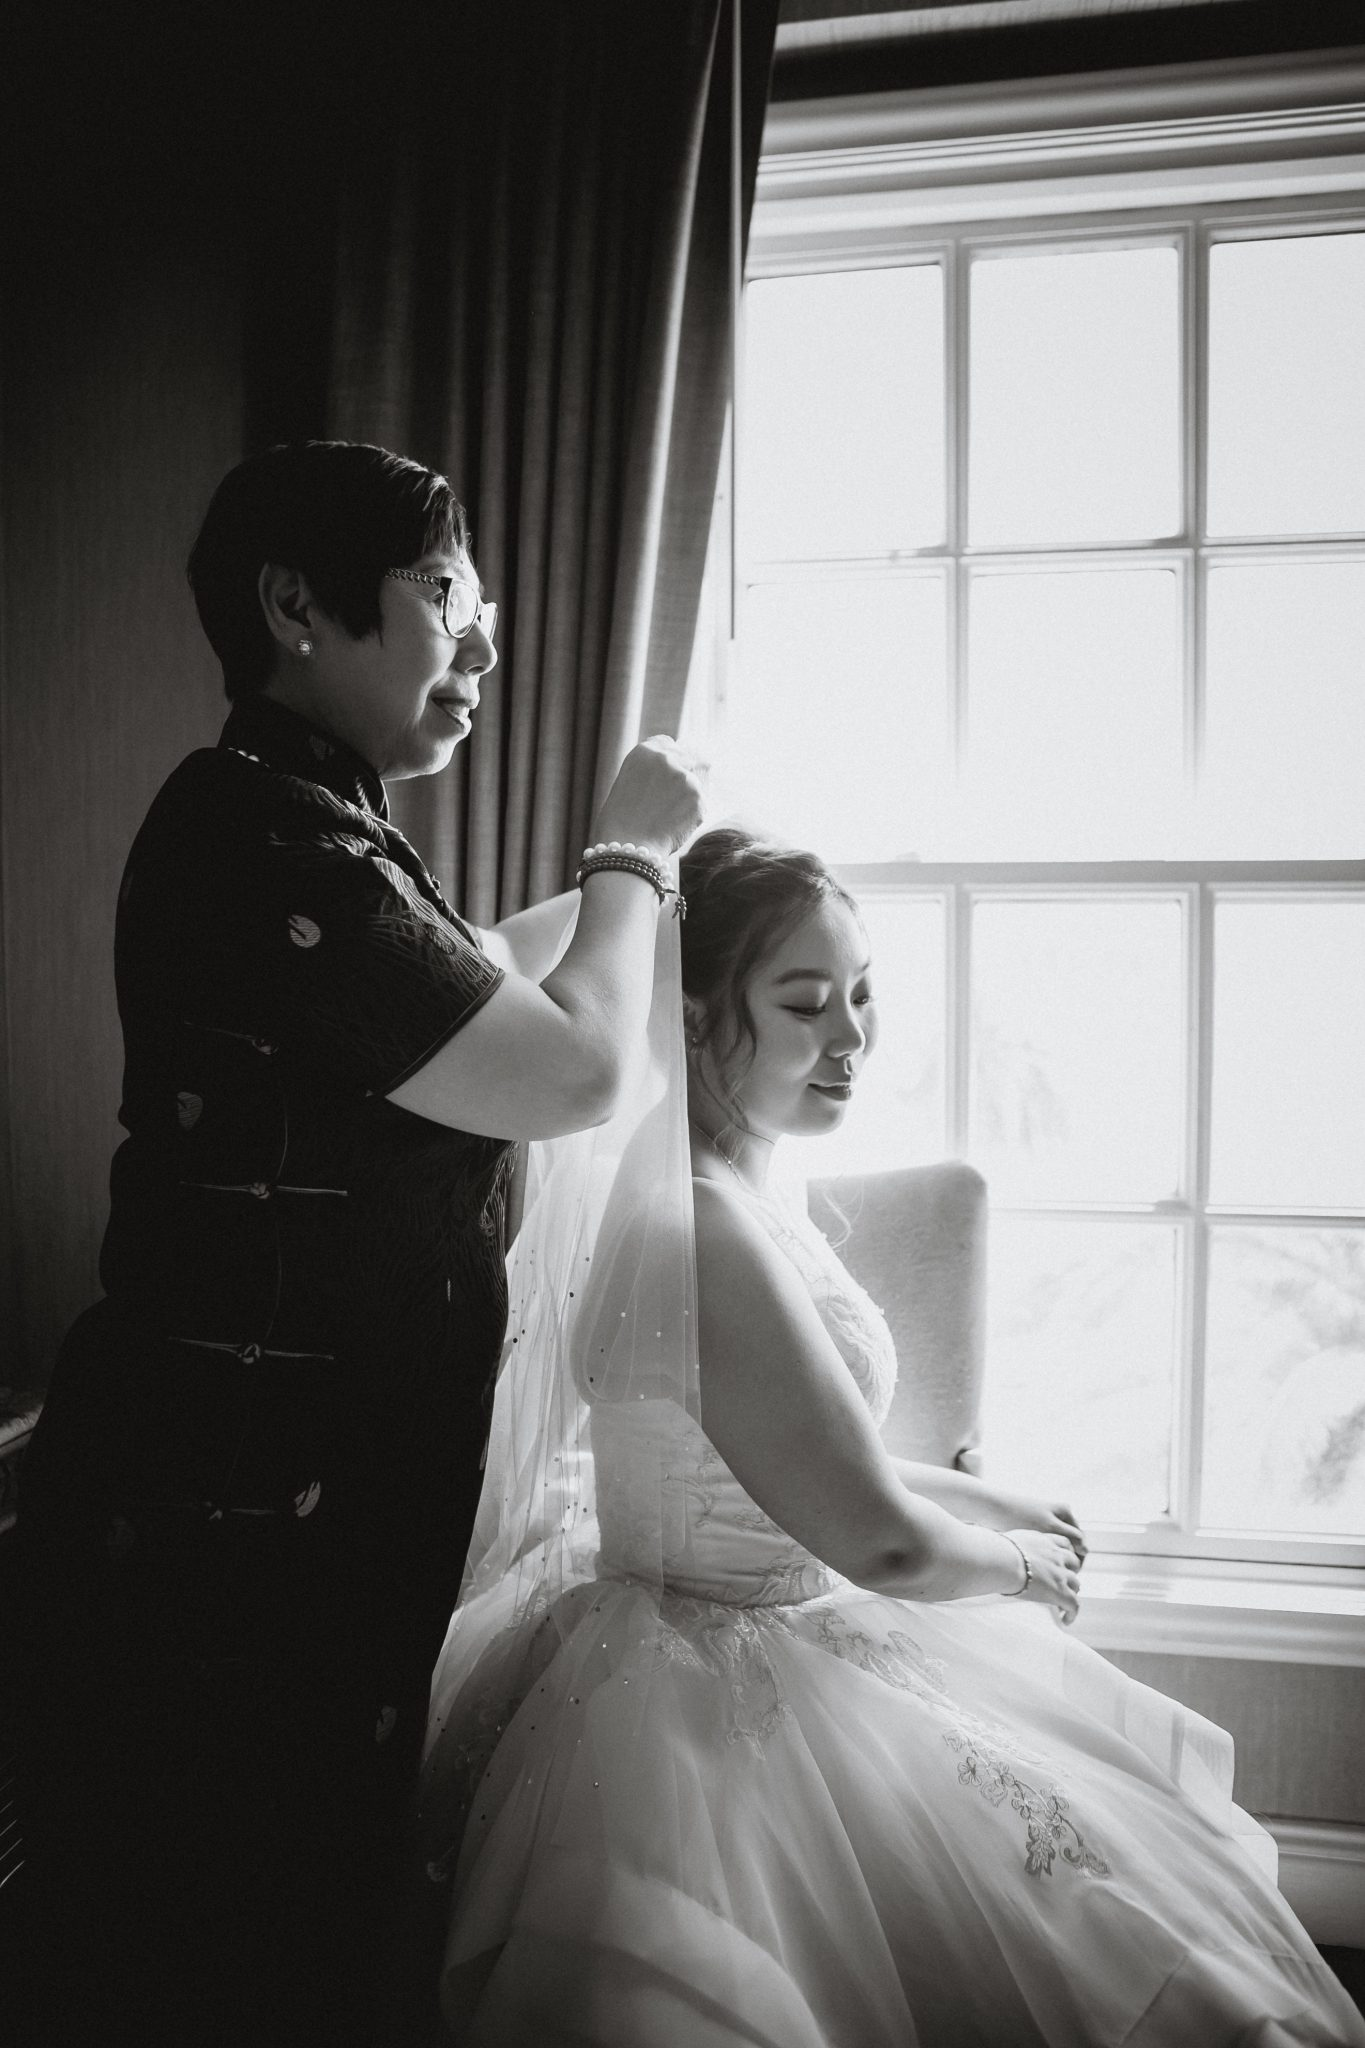 Mother of the bride placing the veil on the bride in the hotel suite